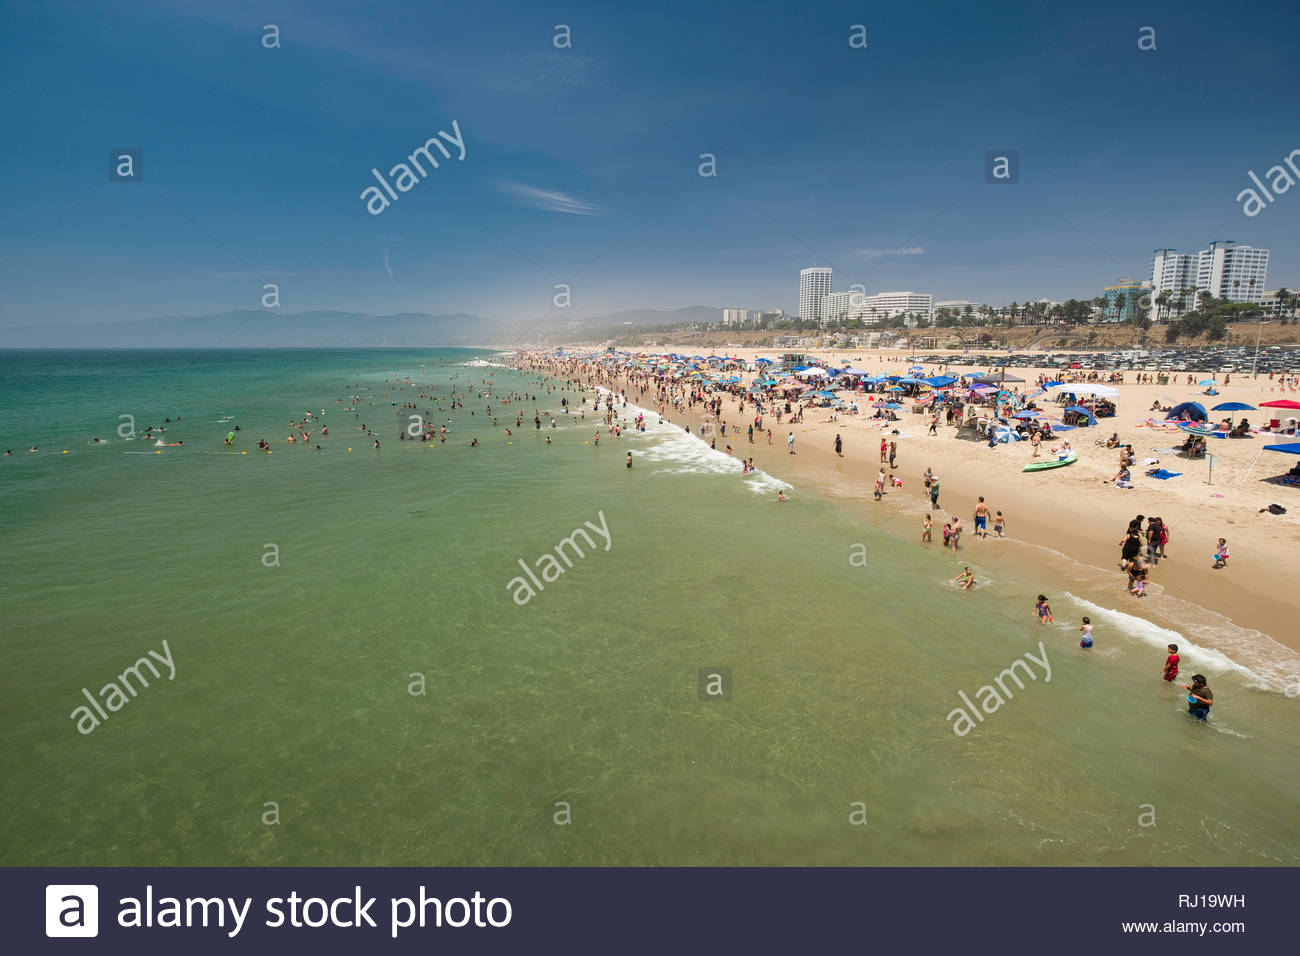 Crowds of people in the Pacific Ocean at the Santa Monica State Beach, Santa Monica, Los Angeles County, California, USA - Stock Image